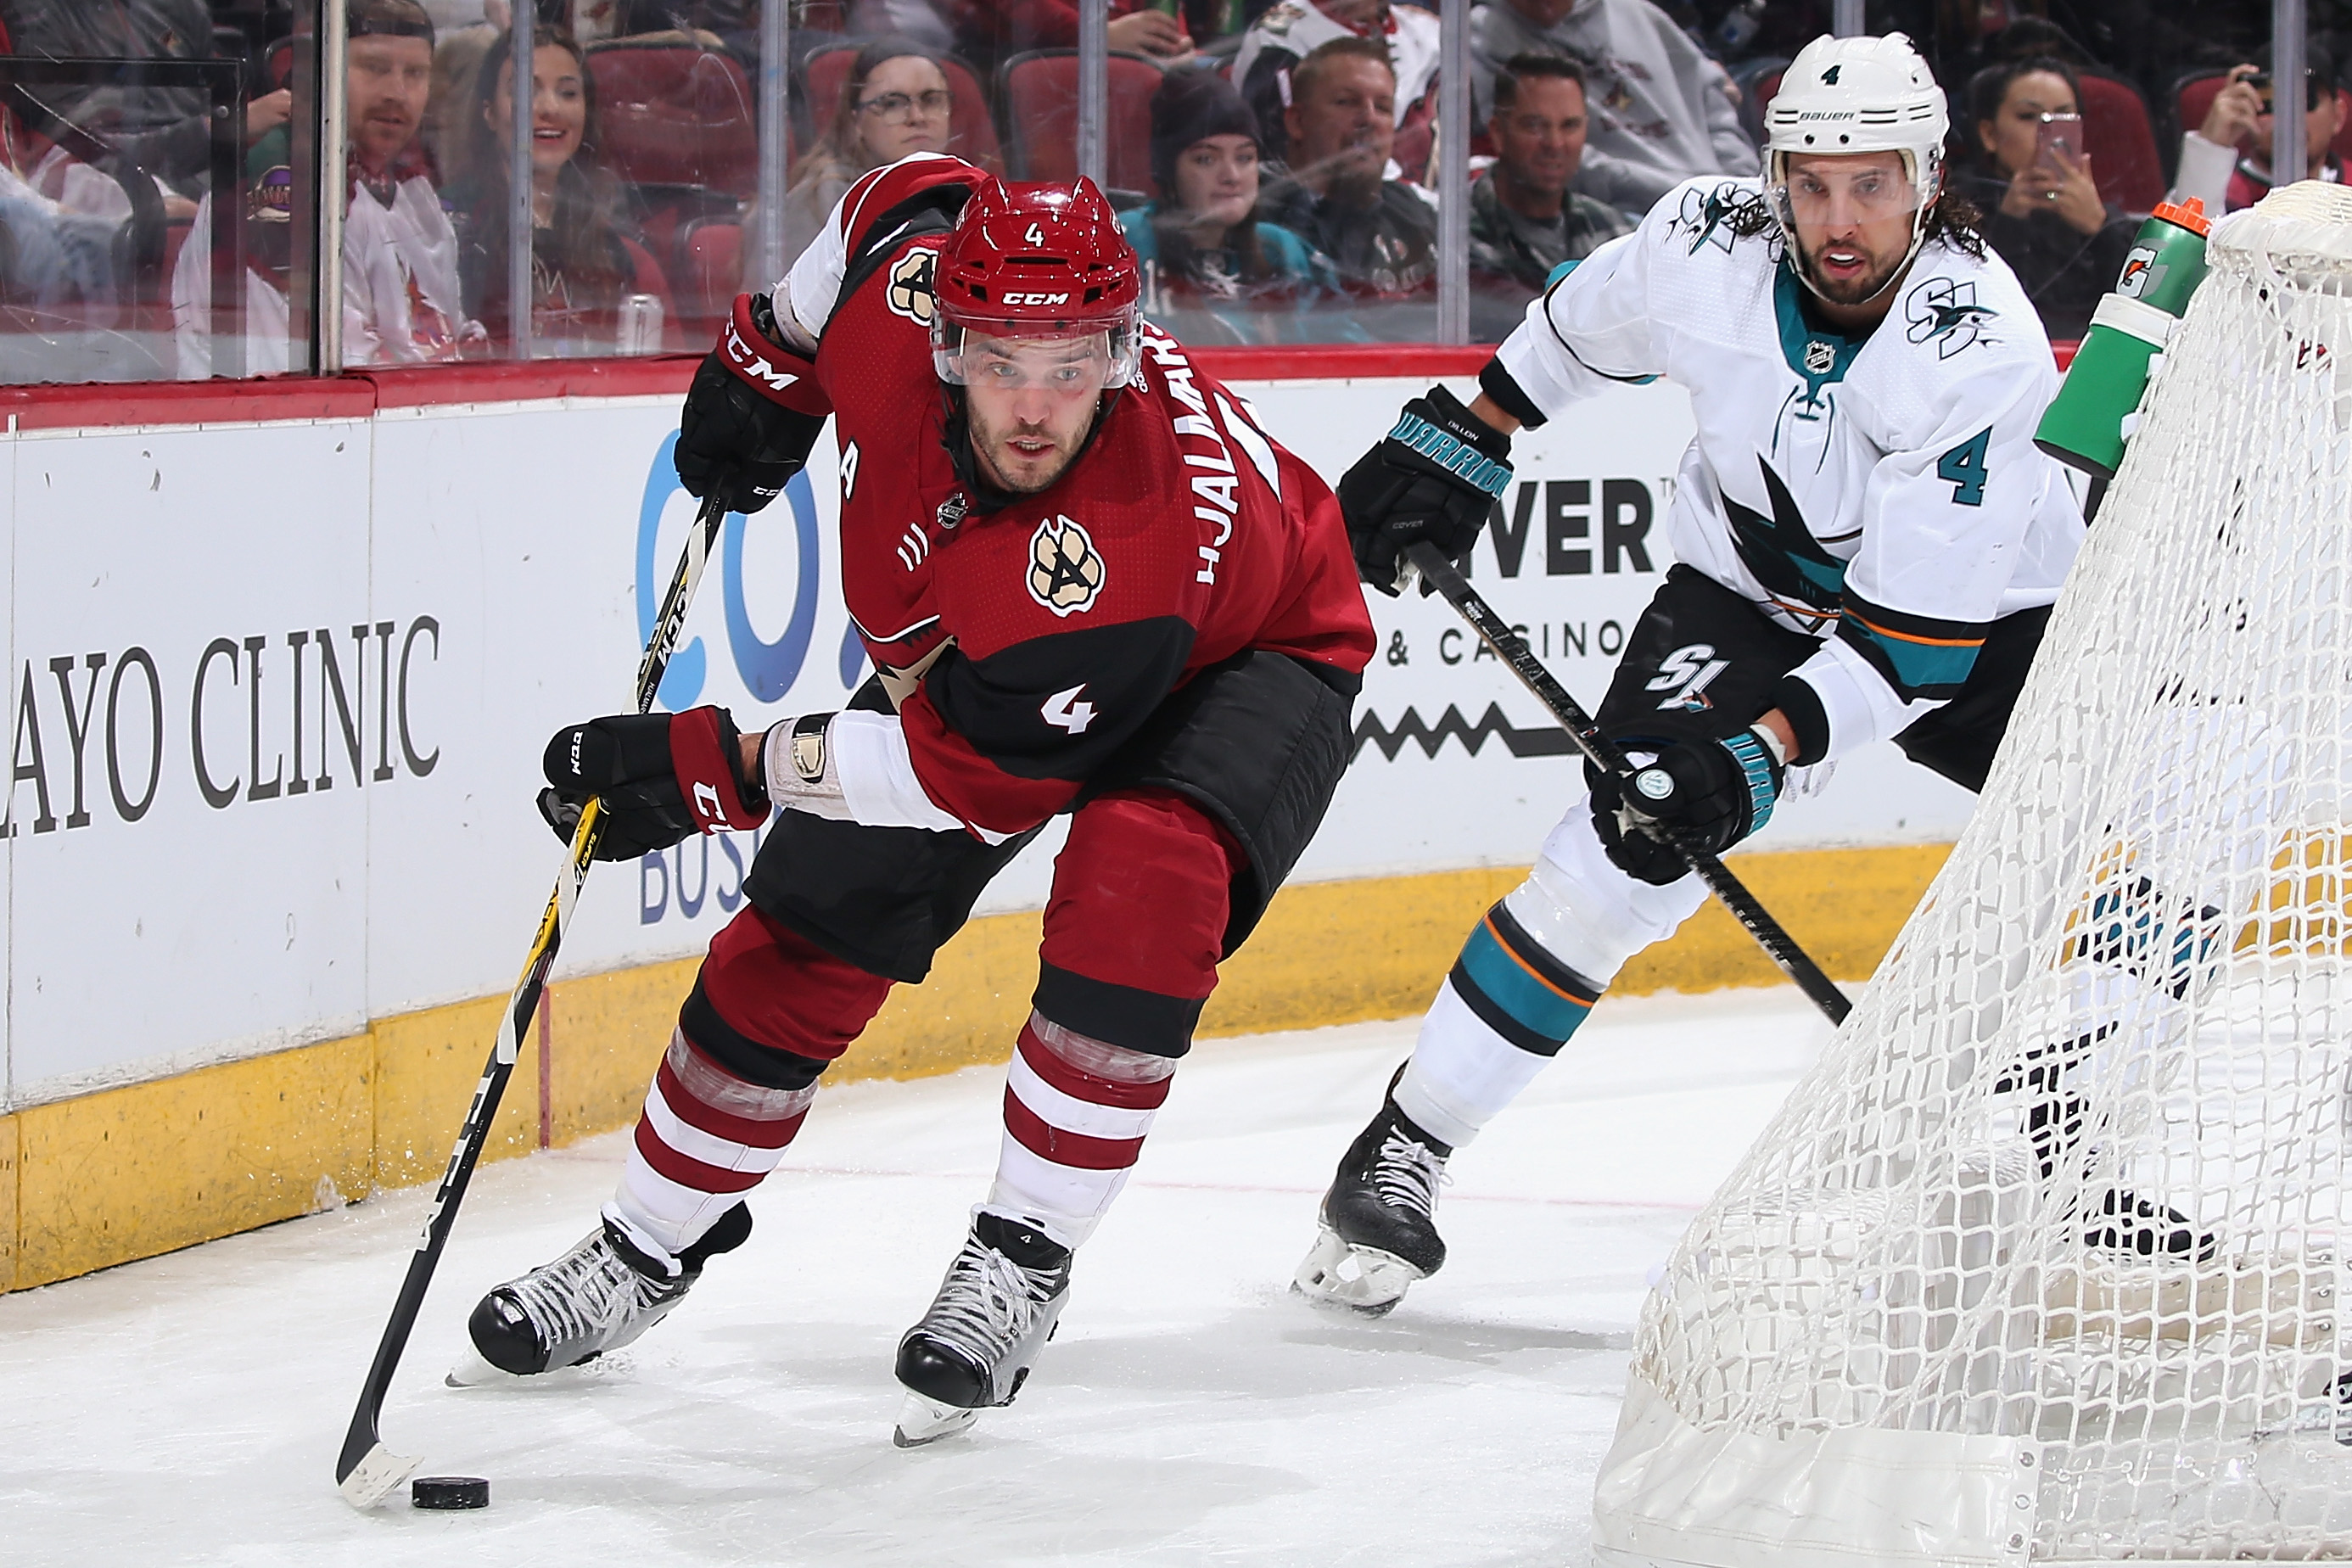 Niklas Hjalmarsson #4 of the Arizona Coyotes skates with the puck ahead of Brenden Dillon #4 of the San Jose Sharks during the first period of the NHL game at Gila River Arena on January 14, 2020 in Glendale, Arizona.